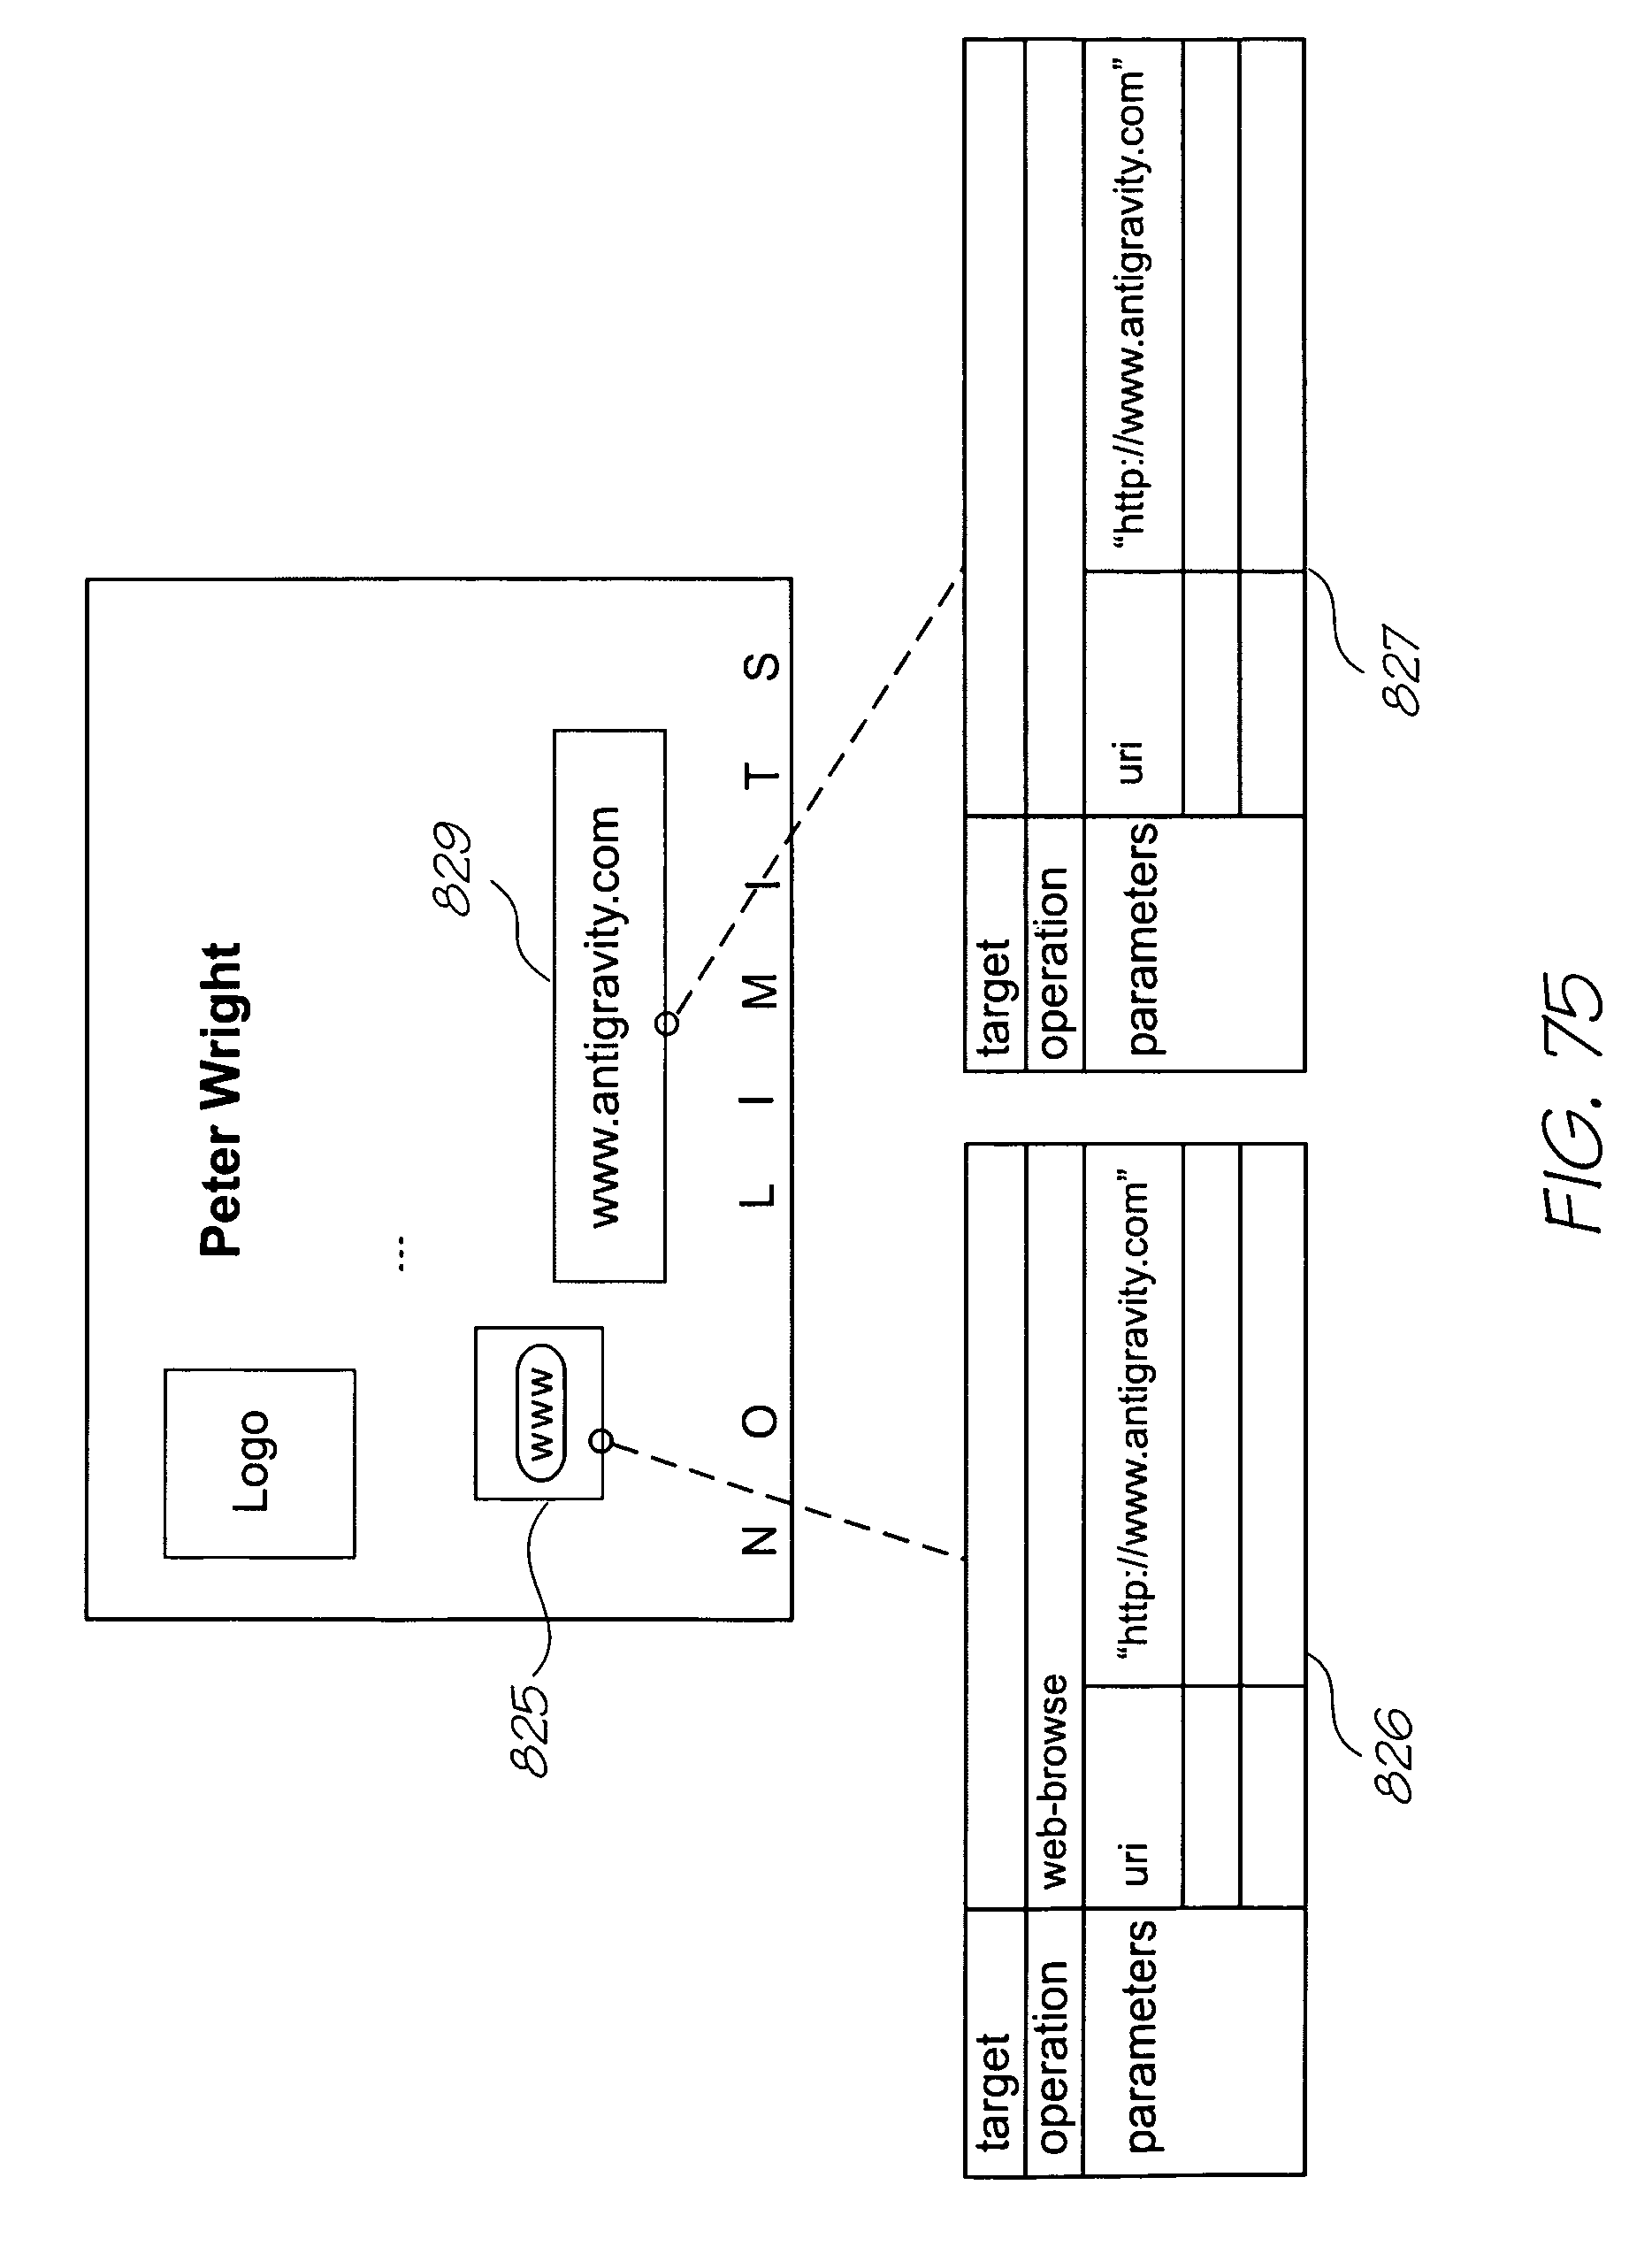 Patent Us 7991493 B2 Faxphone Wiring Diagram Images